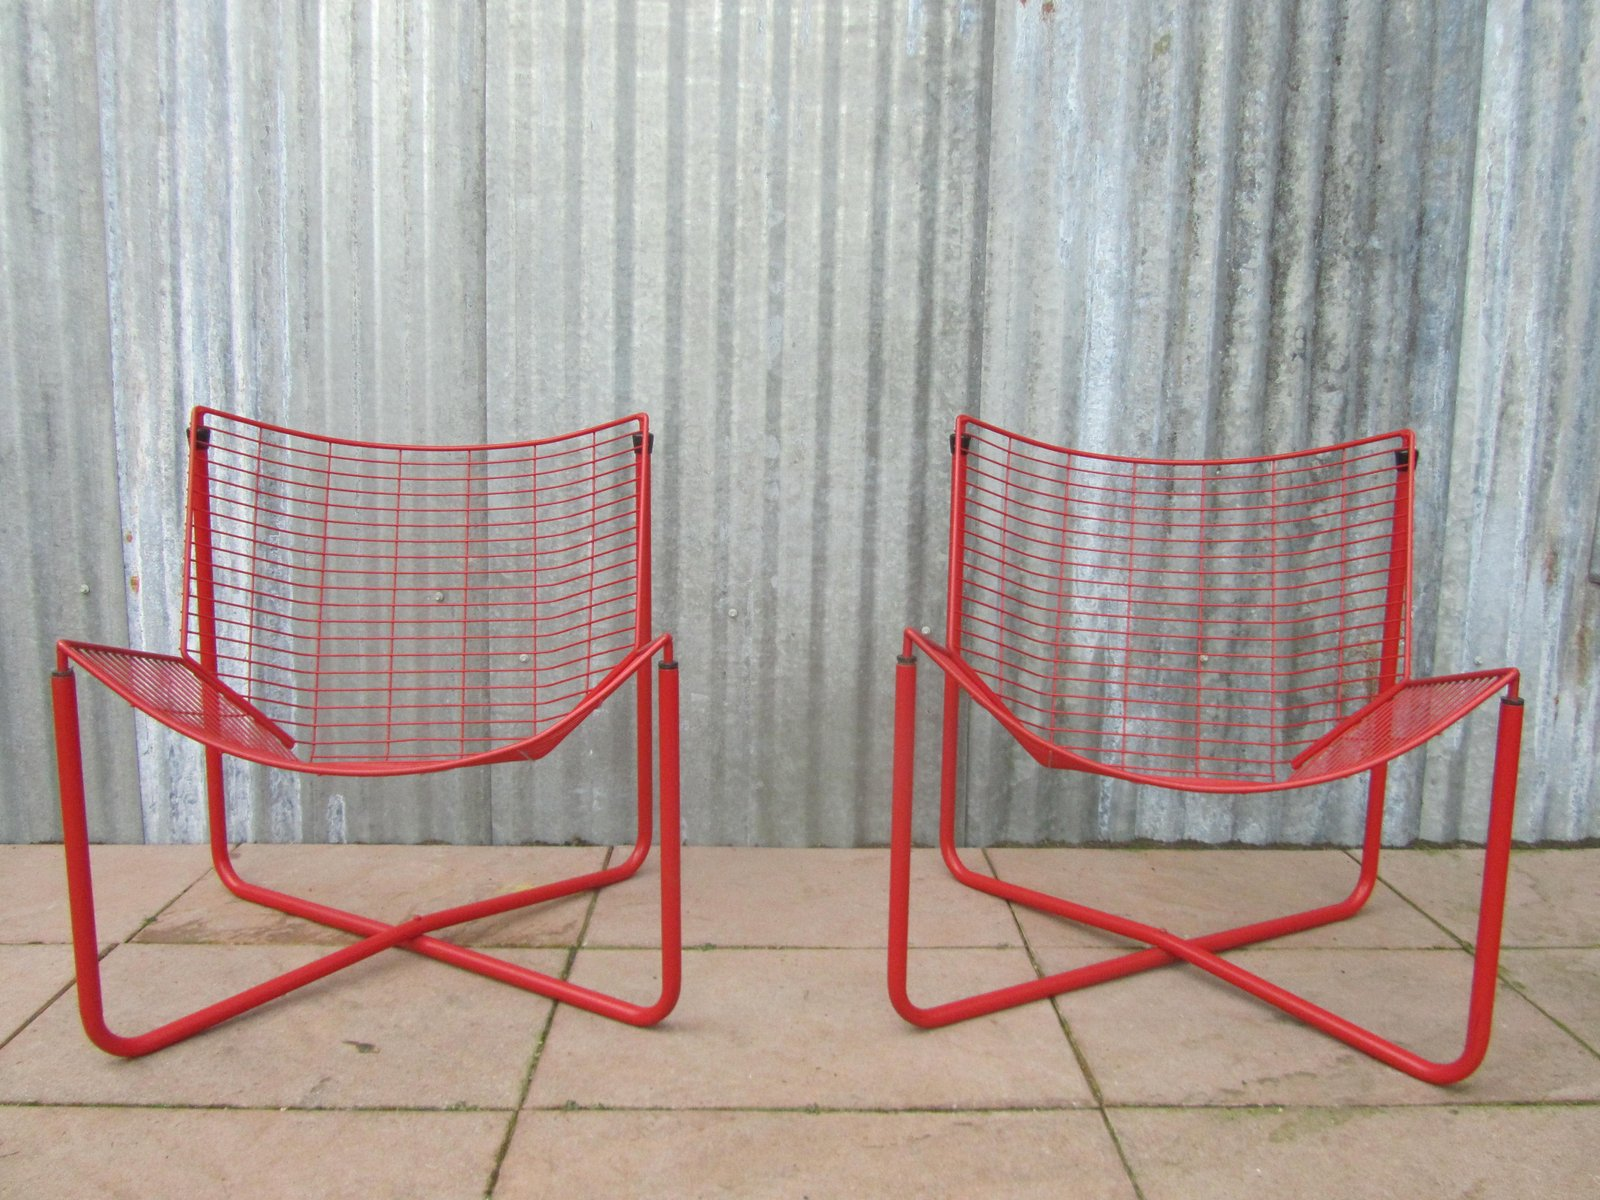 ikea metal chairs swivel cuddle chair john lewis red wire jarpen by niels gammelgaard for